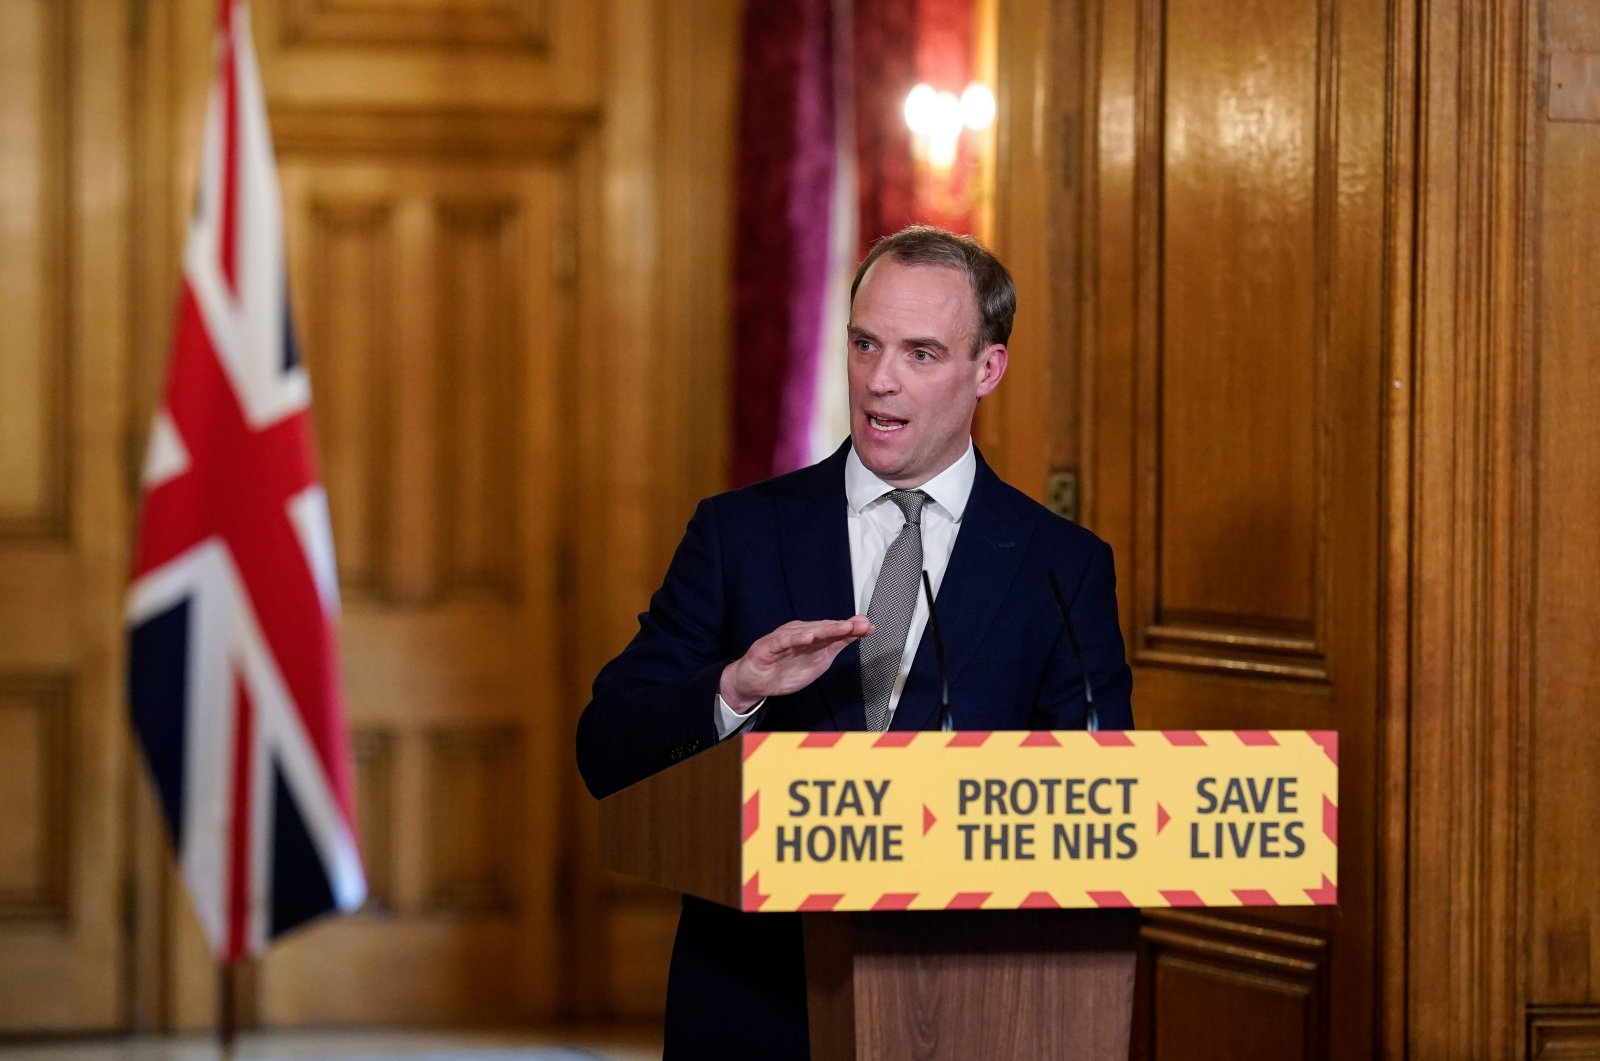 A handout image released by 10 Downing Street, shows Britain's Foreign Secretary Dominic Raab speaking during a remote press conference to update the nation on the COVID-19 pandemic, London, Thursday, April 16, 2020. (AFP Photo)